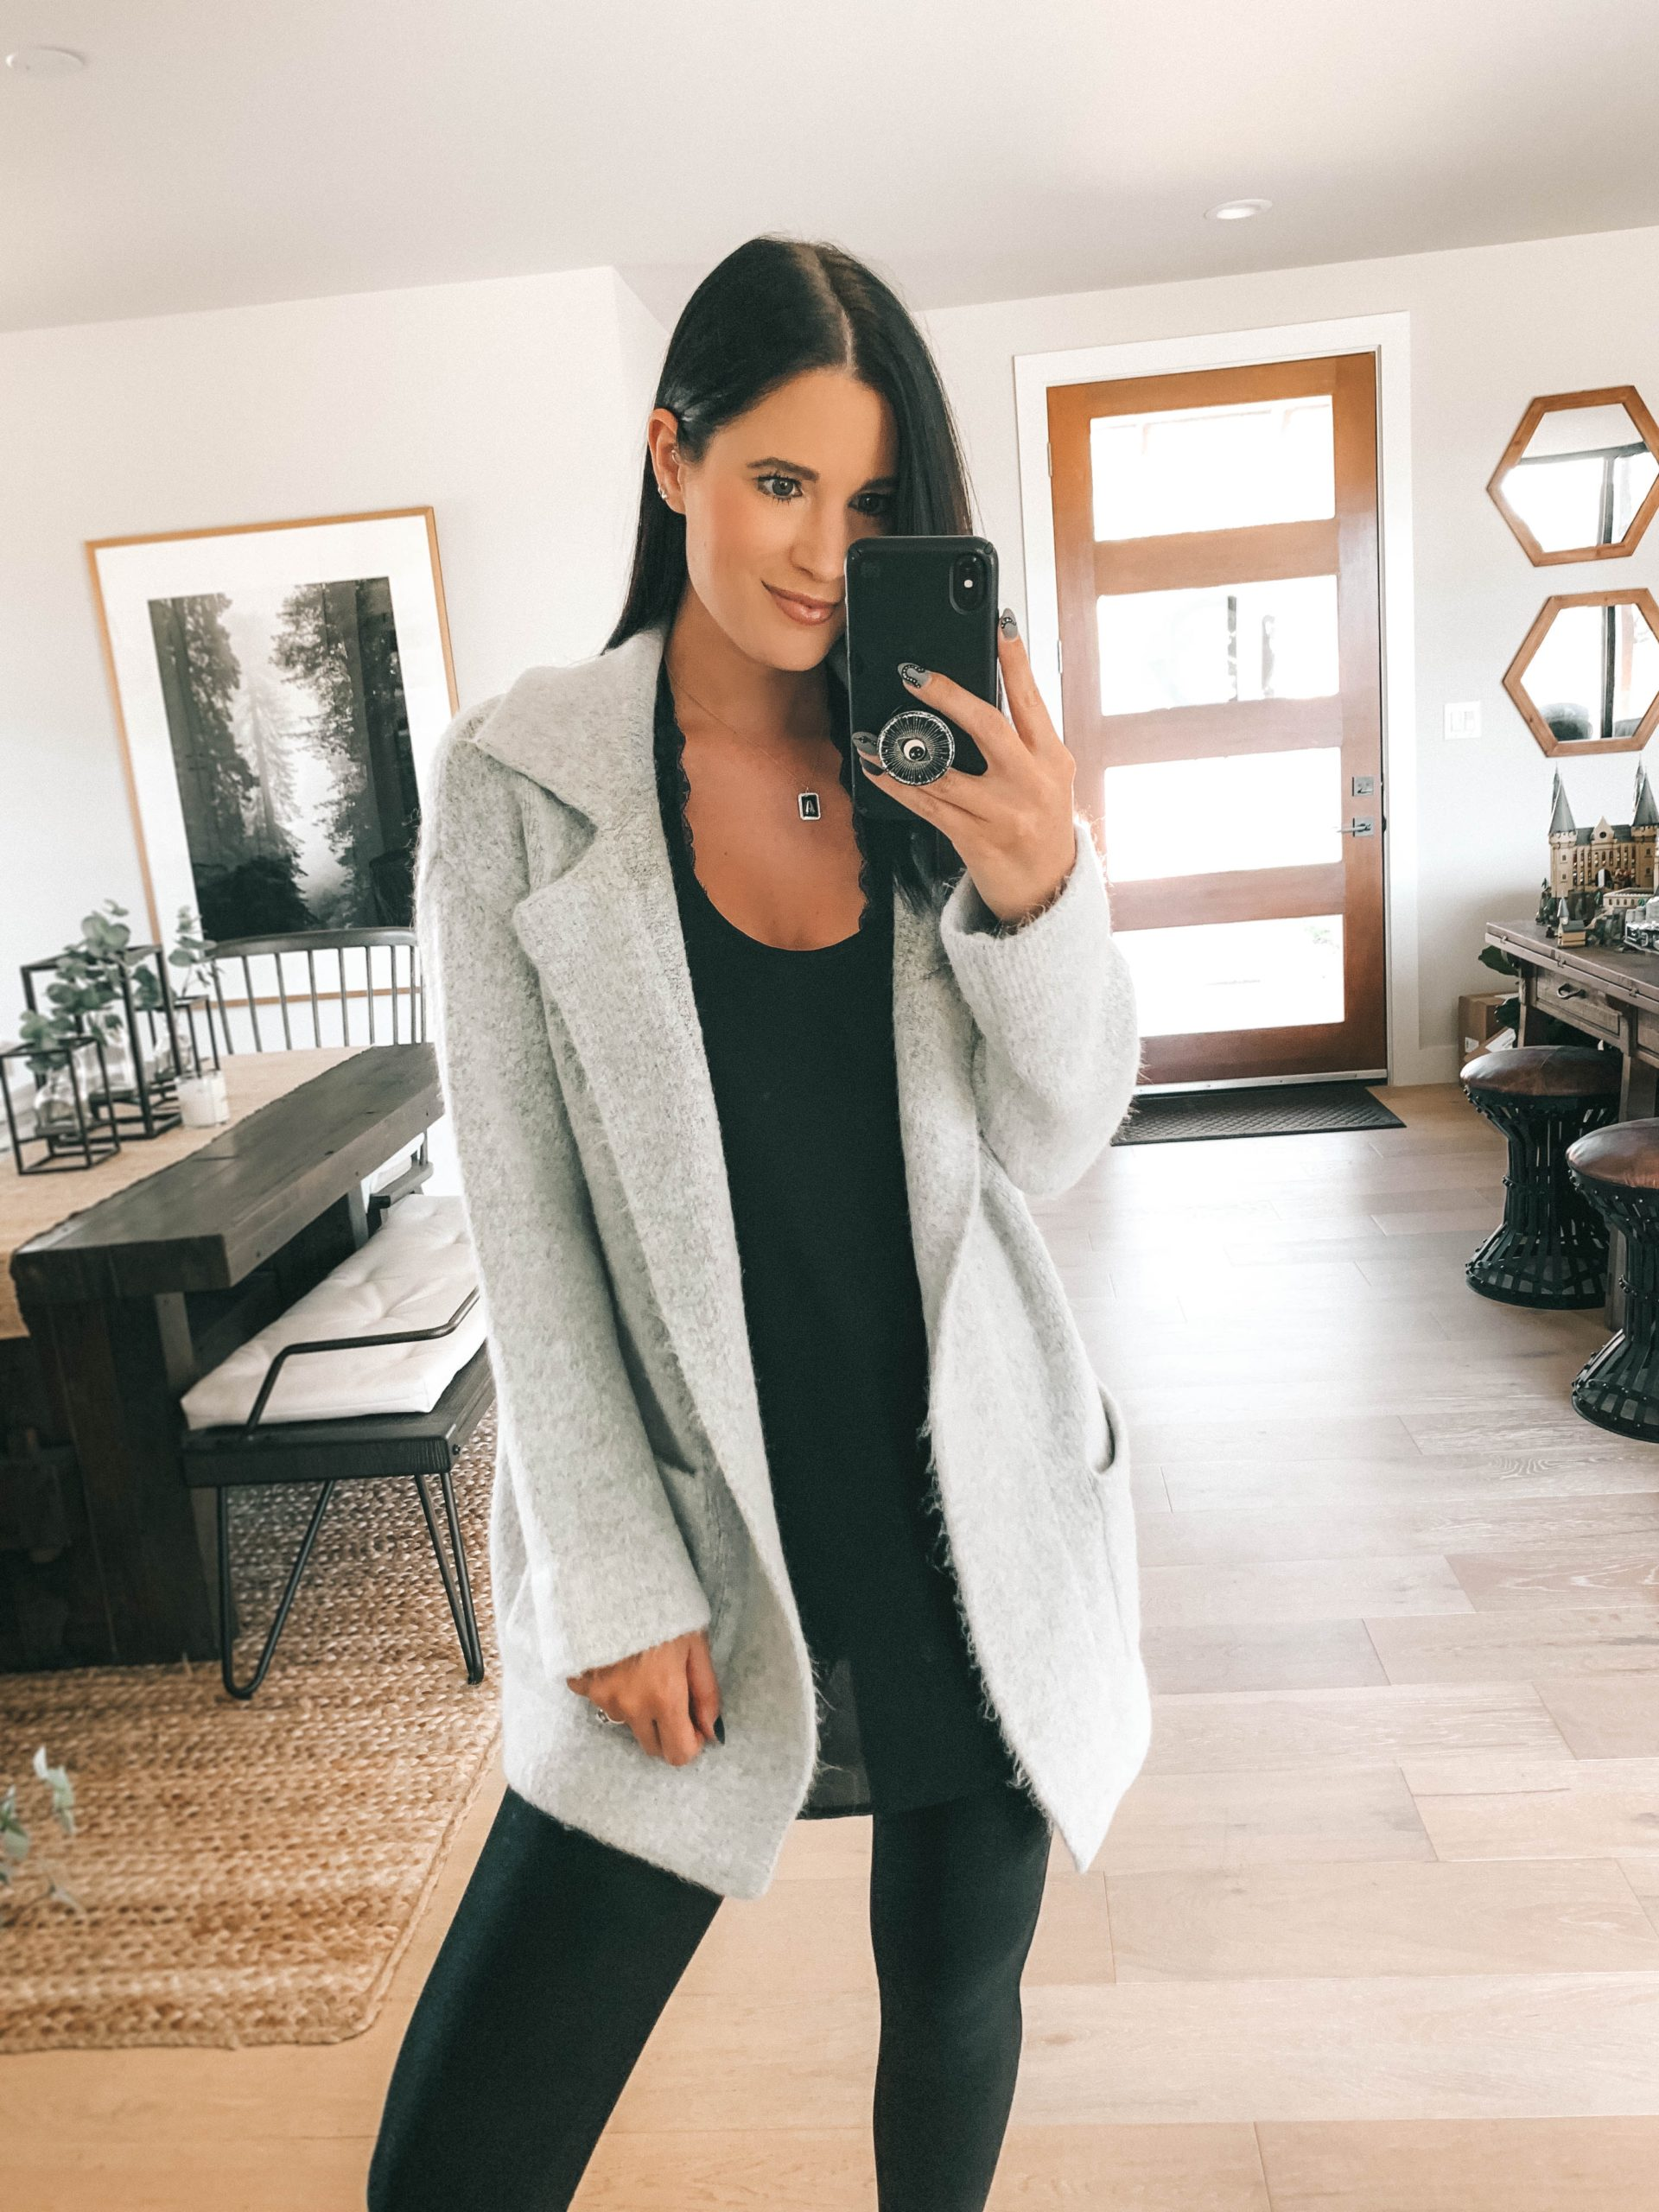 Nordstrom Anniversary Sale by popular Austin fashion blog, Dressed to Kill: image of a woman wearing Nordstrom Faux Leather Leggings SPANX, Nordstrom Layering Tee CHELSEA28, and Nordstrom Cardigan Coat THREAD & SUPPLY.